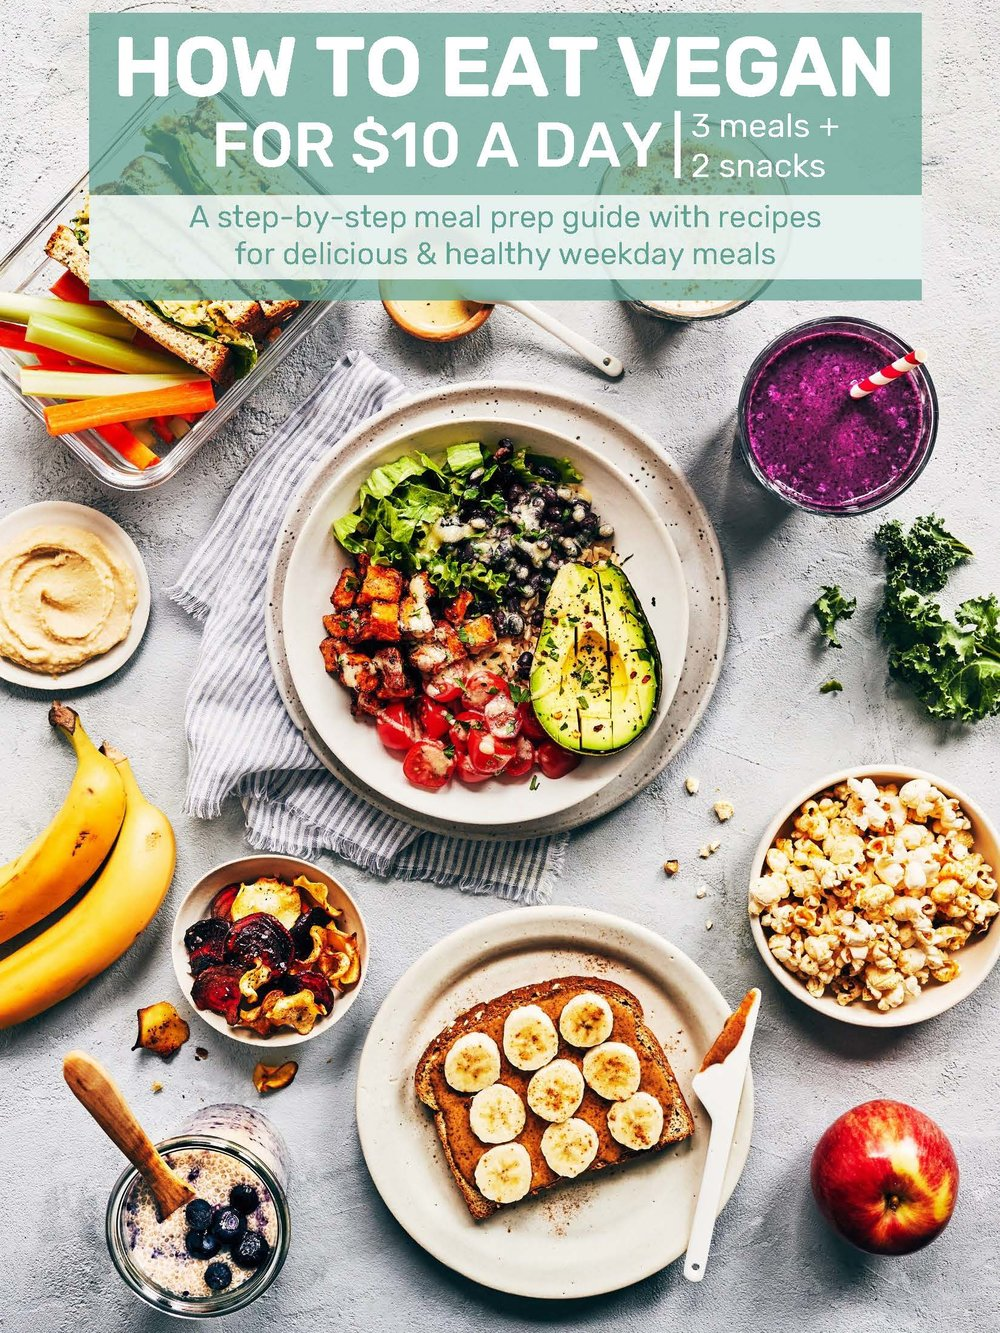 Evergreen Kitchen's Meal Prep Guide - How to Eat Vegan for $10 A Day